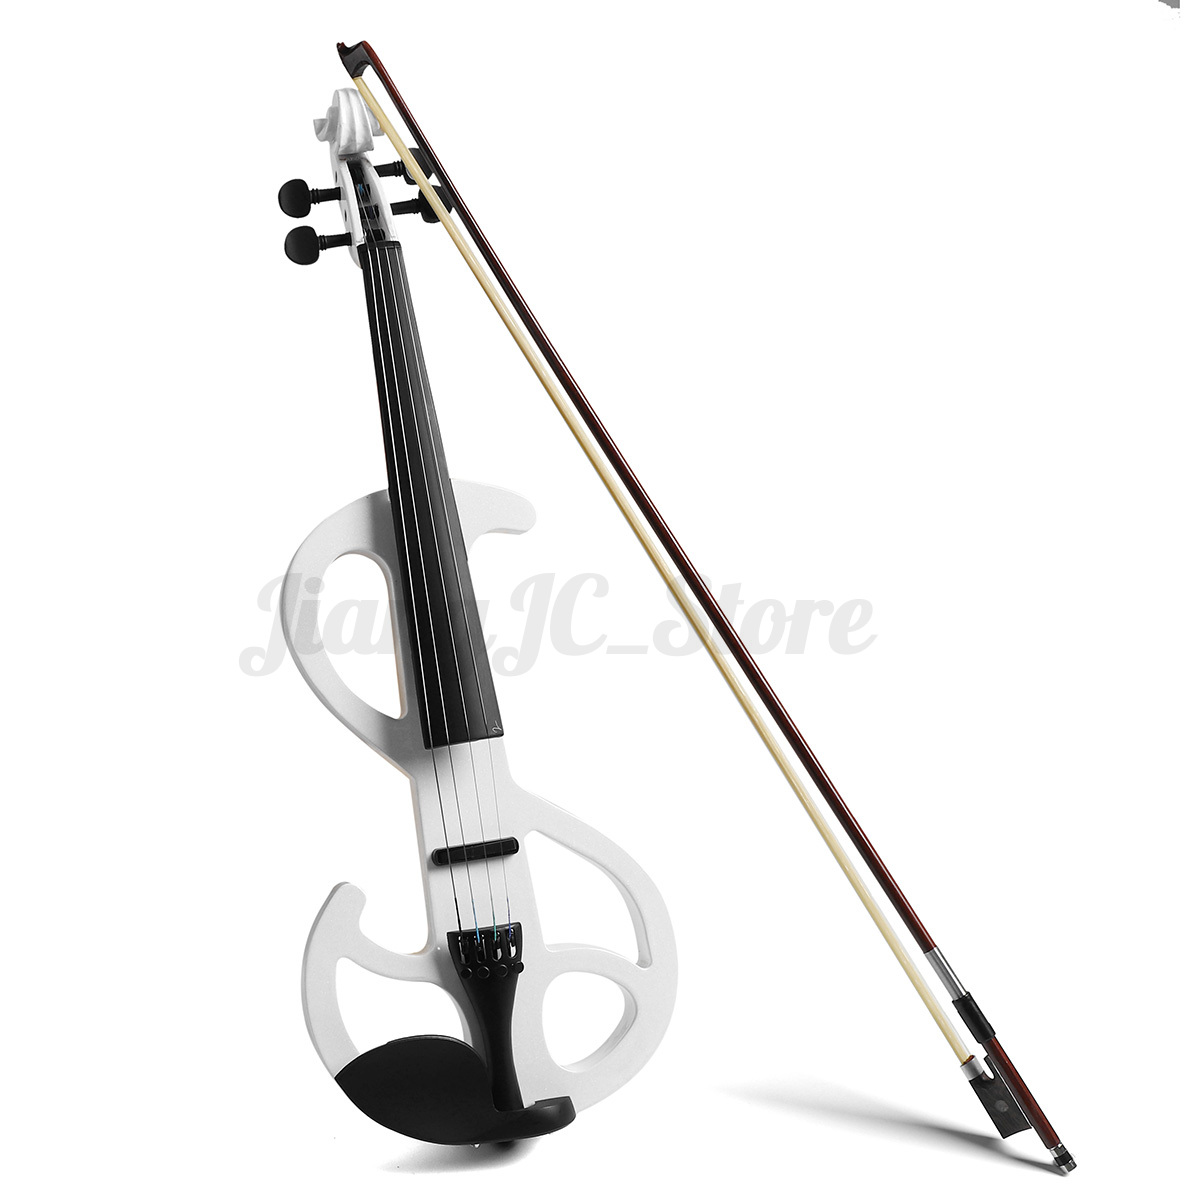 electric violin 4 4 full size 4 strings solid wood with headphone cable case ebay. Black Bedroom Furniture Sets. Home Design Ideas